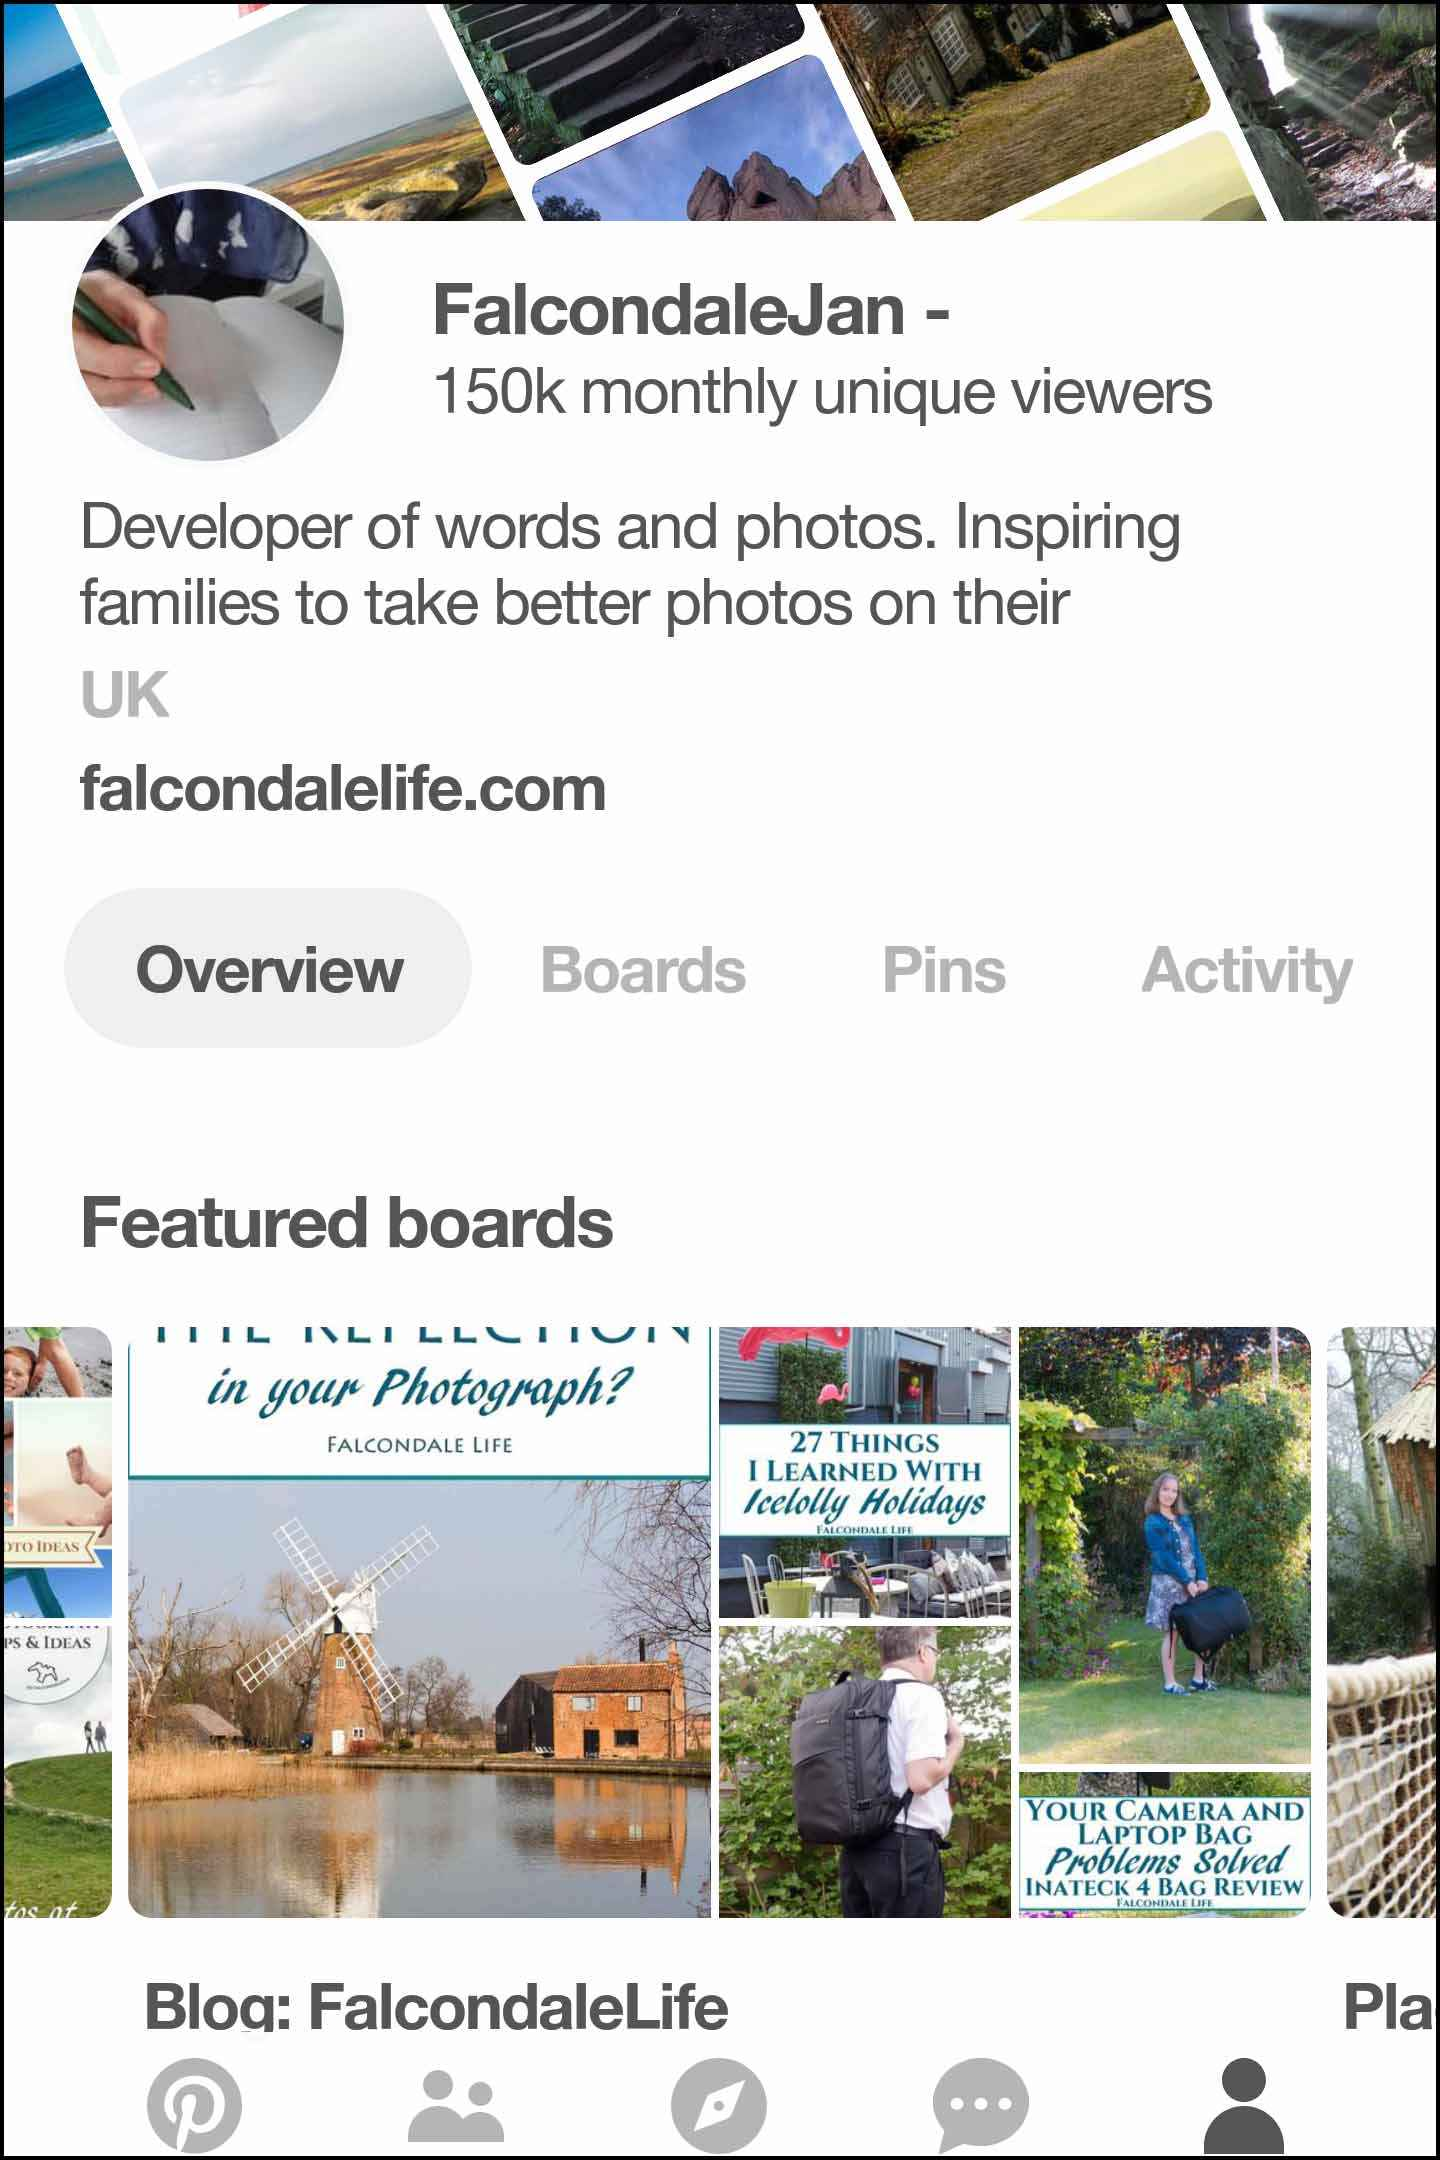 Unusual tips and hacks for independent itinerary planning for family holidays. Find ideas for road trips and self catering vacations that others may miss. Itinerary planning for families - hacks and tips for independent travel on Falcondale Life blog. Image description: Pinterest screenshot